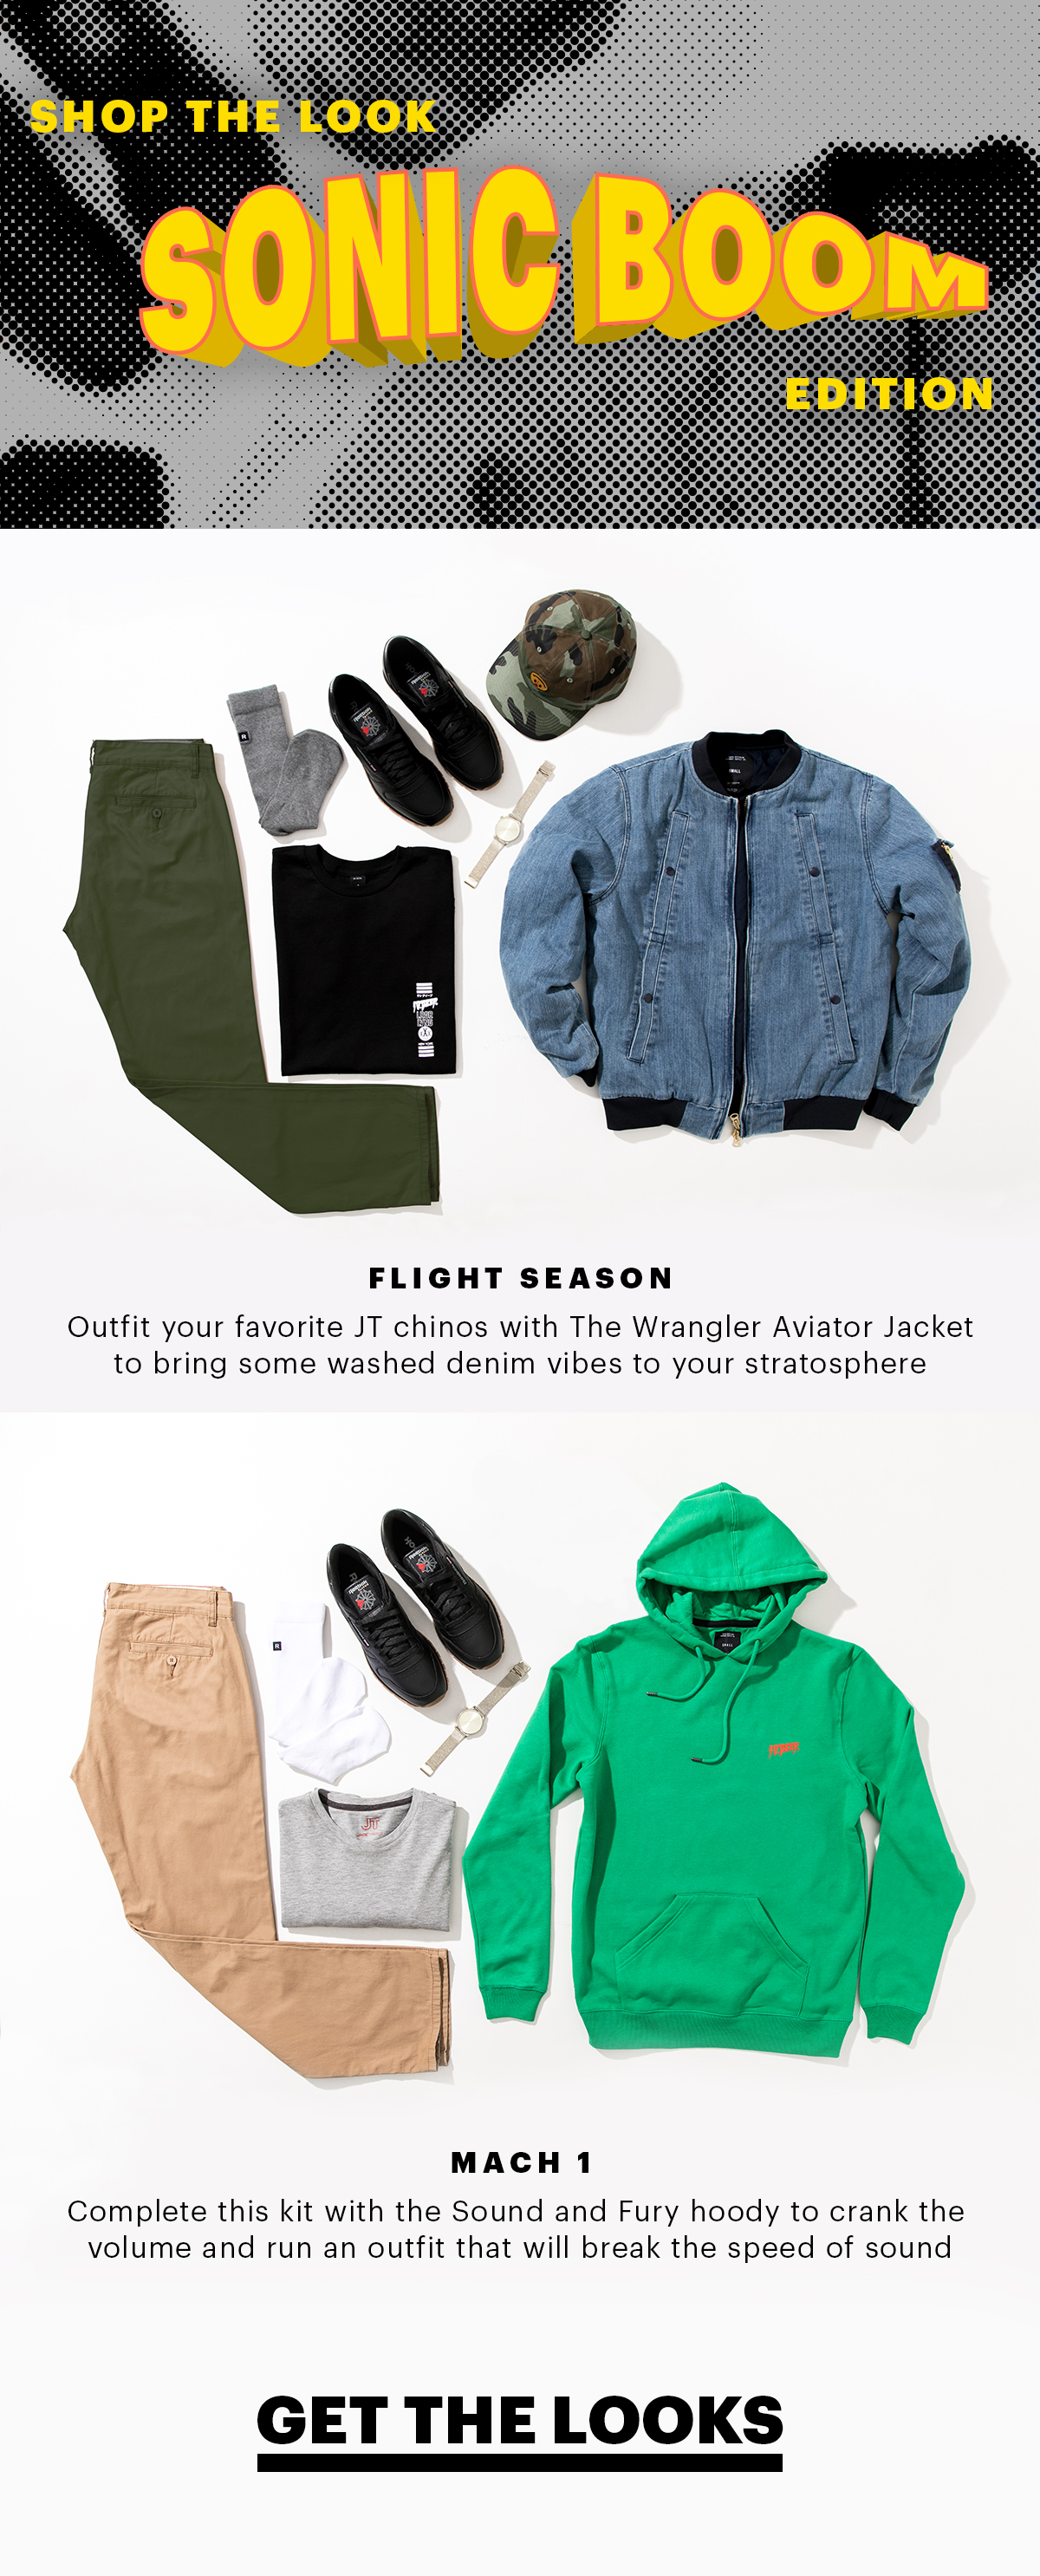 Shop the Look: Sonic Boom Edition | Flight Season: Outfit your favorite JT chinos with The Wrangler Aviator Jacket to bring some washed denim vibes to your stratosphere. | Mach 1: Complete this kit with the Sound and Fury hoody to crank the volume and run an outfit that will break the speed of sound | Get the Looks